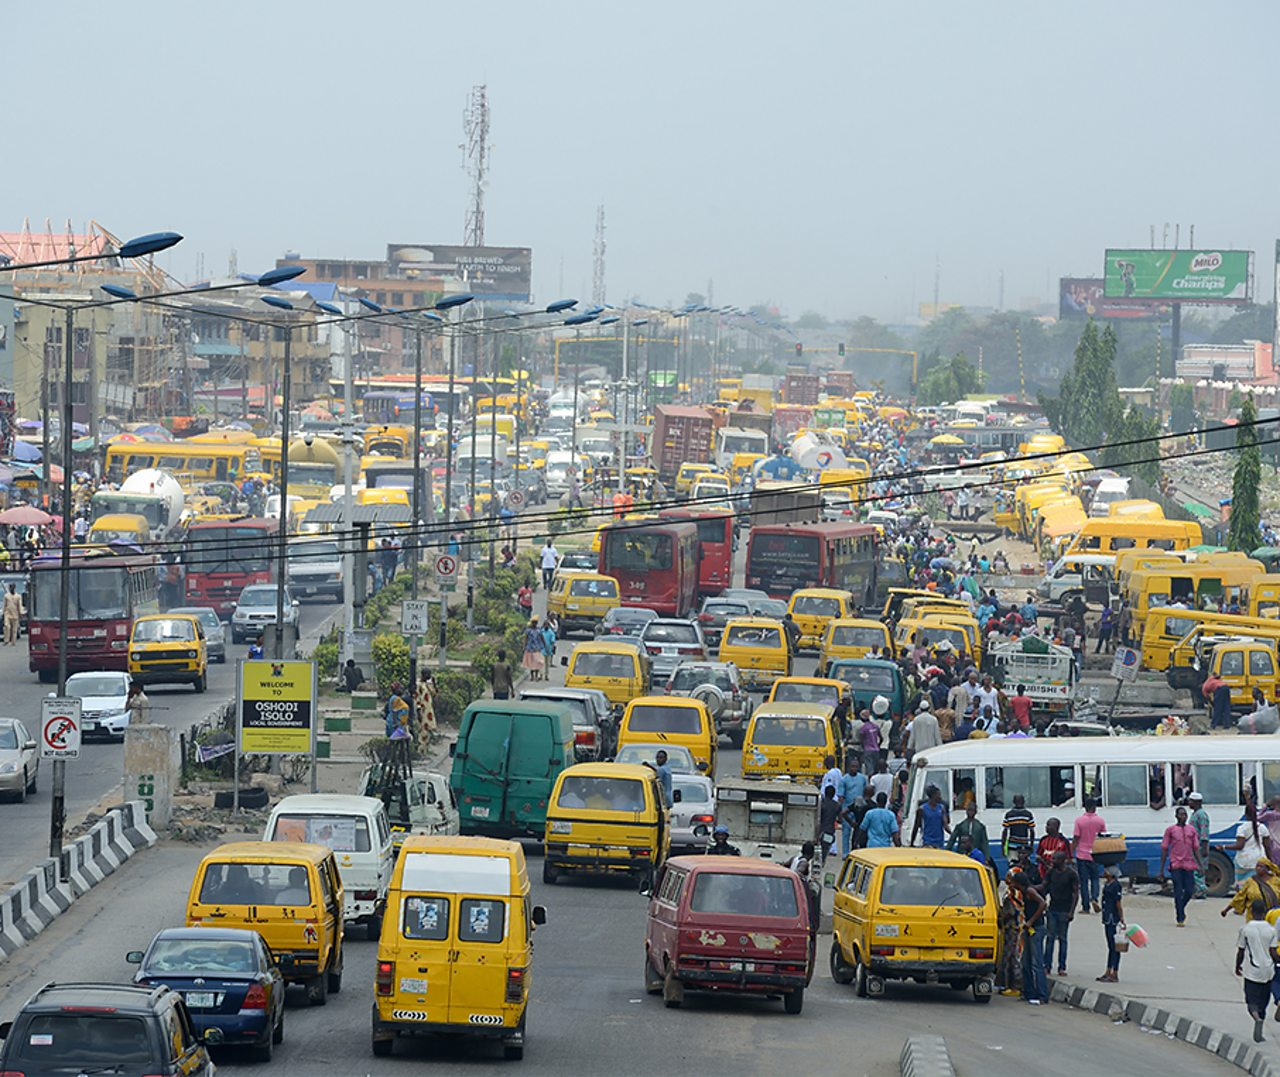 A photo of traffic in the busy streets of Nigeria